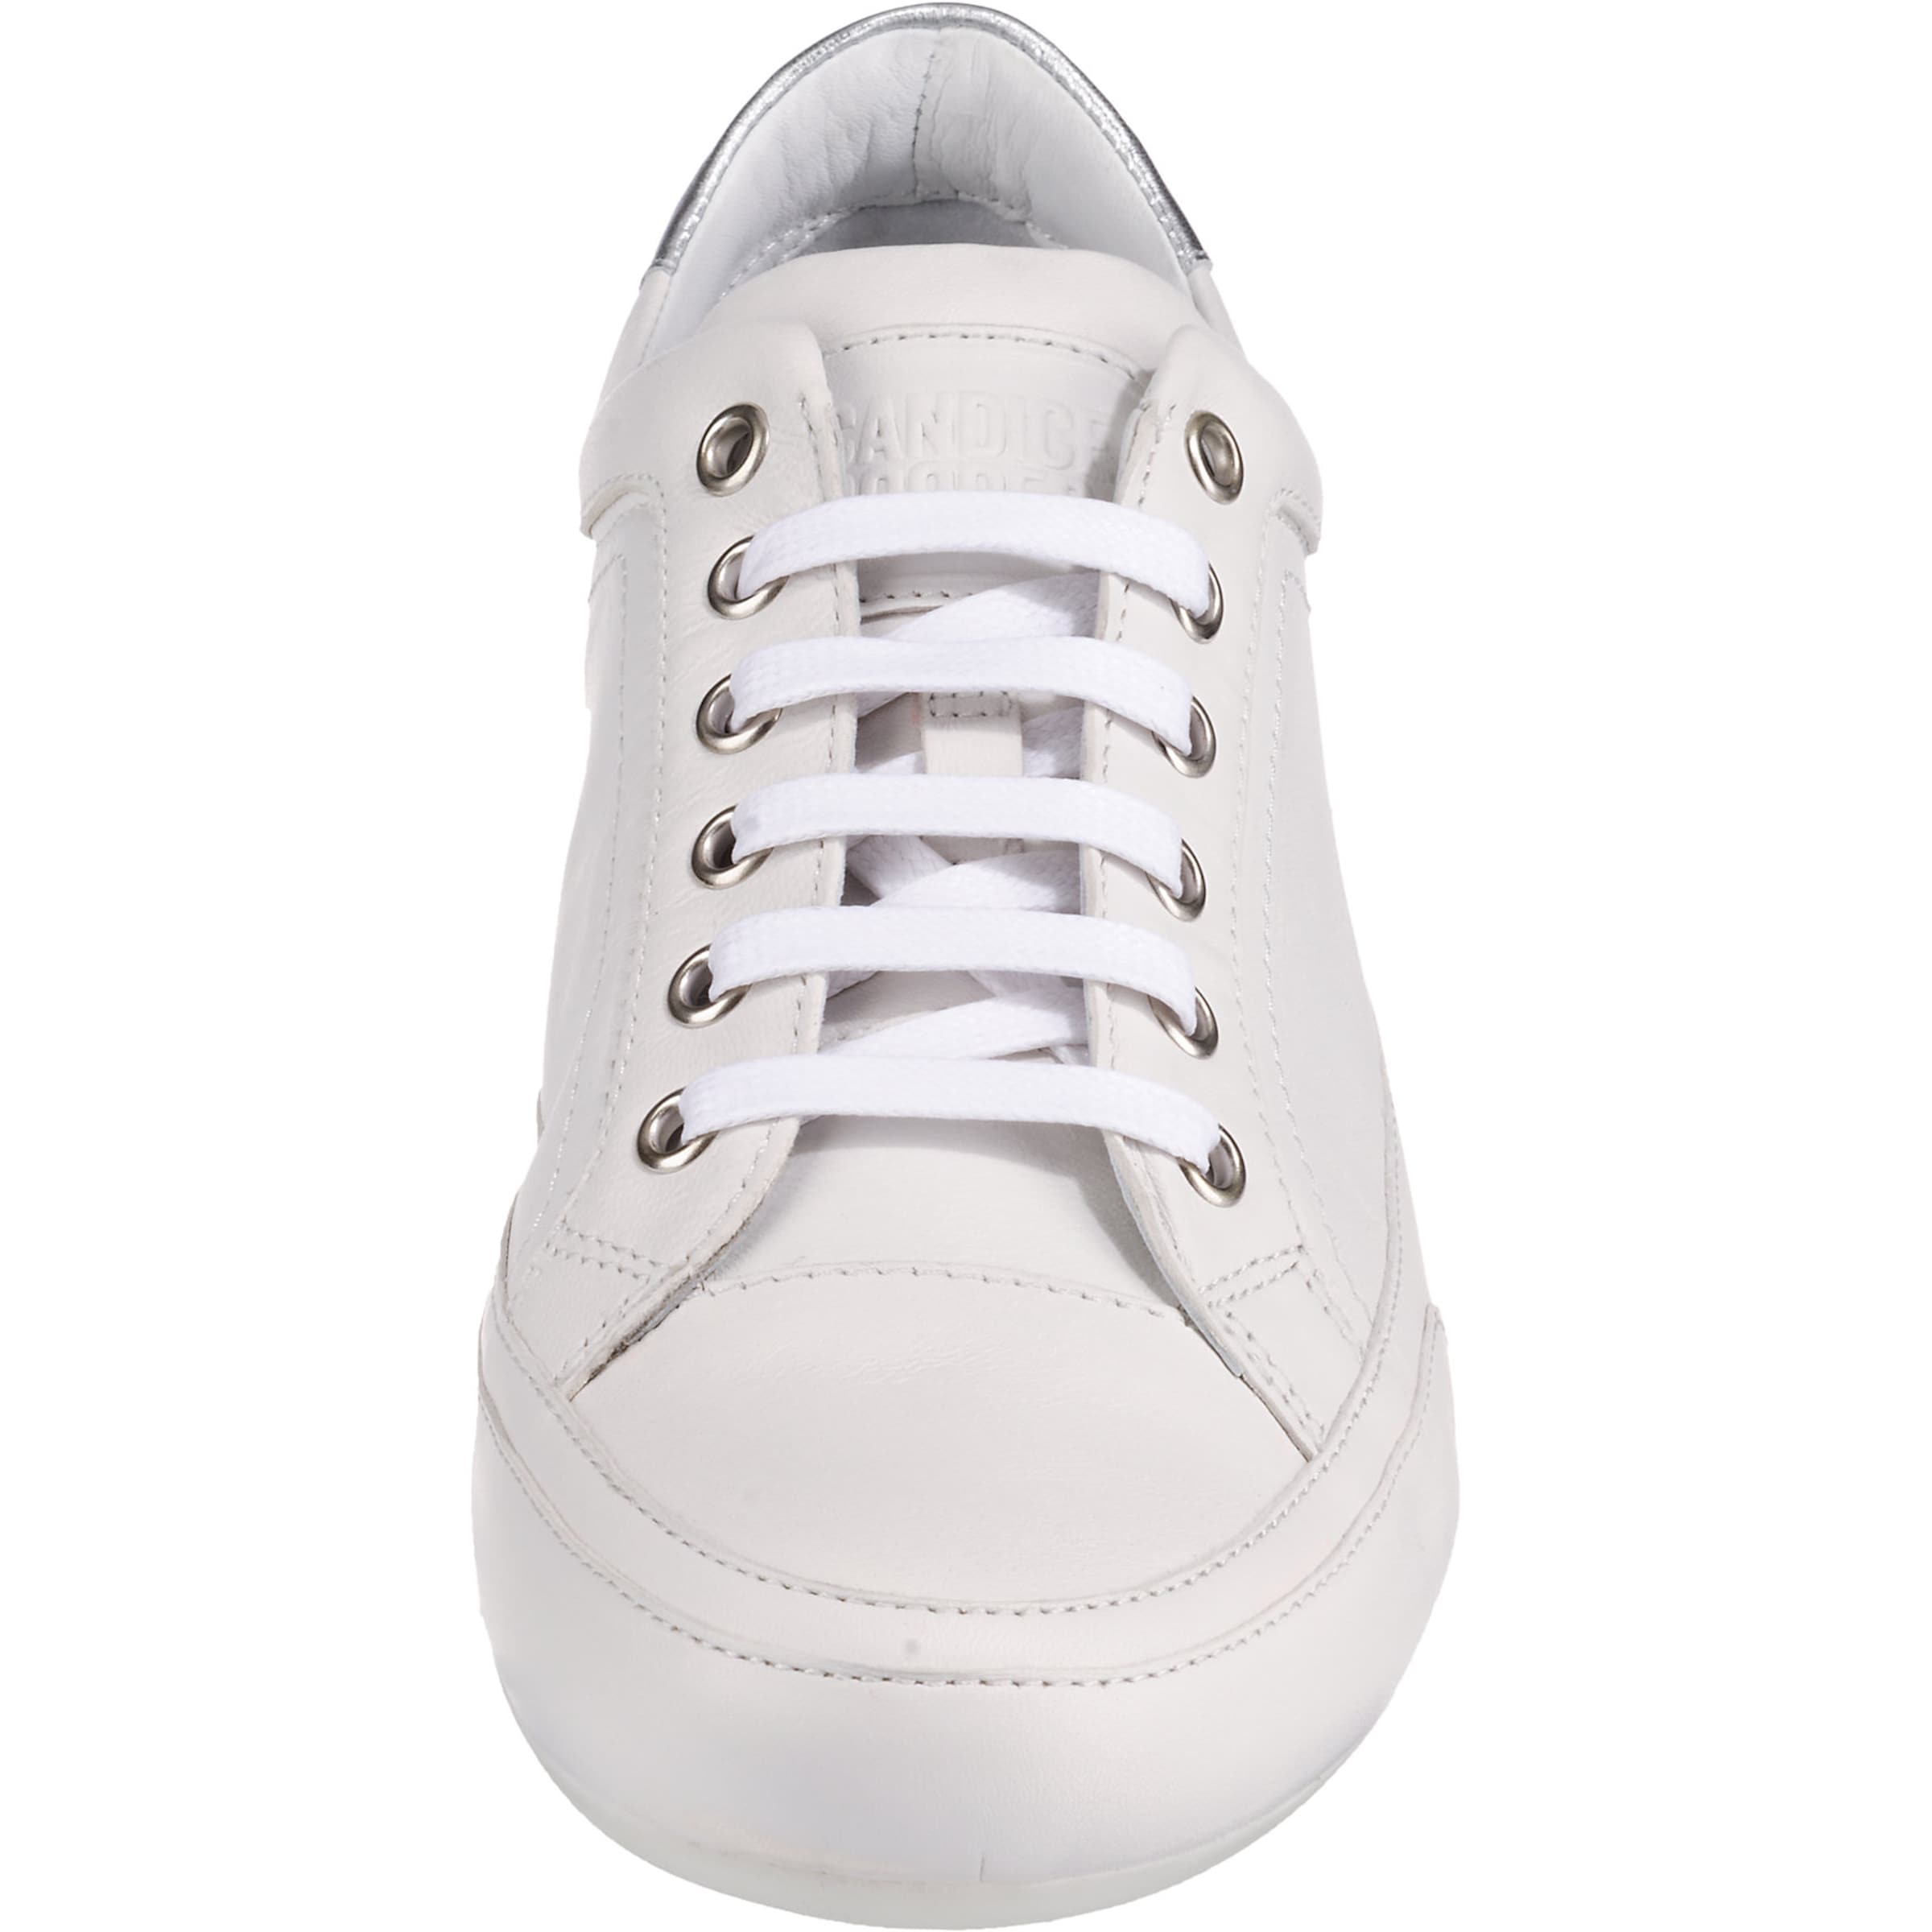 SilberWeiß In Candice Cooper Candice Sneakers In Cooper Sneakers 8vNmn0wO